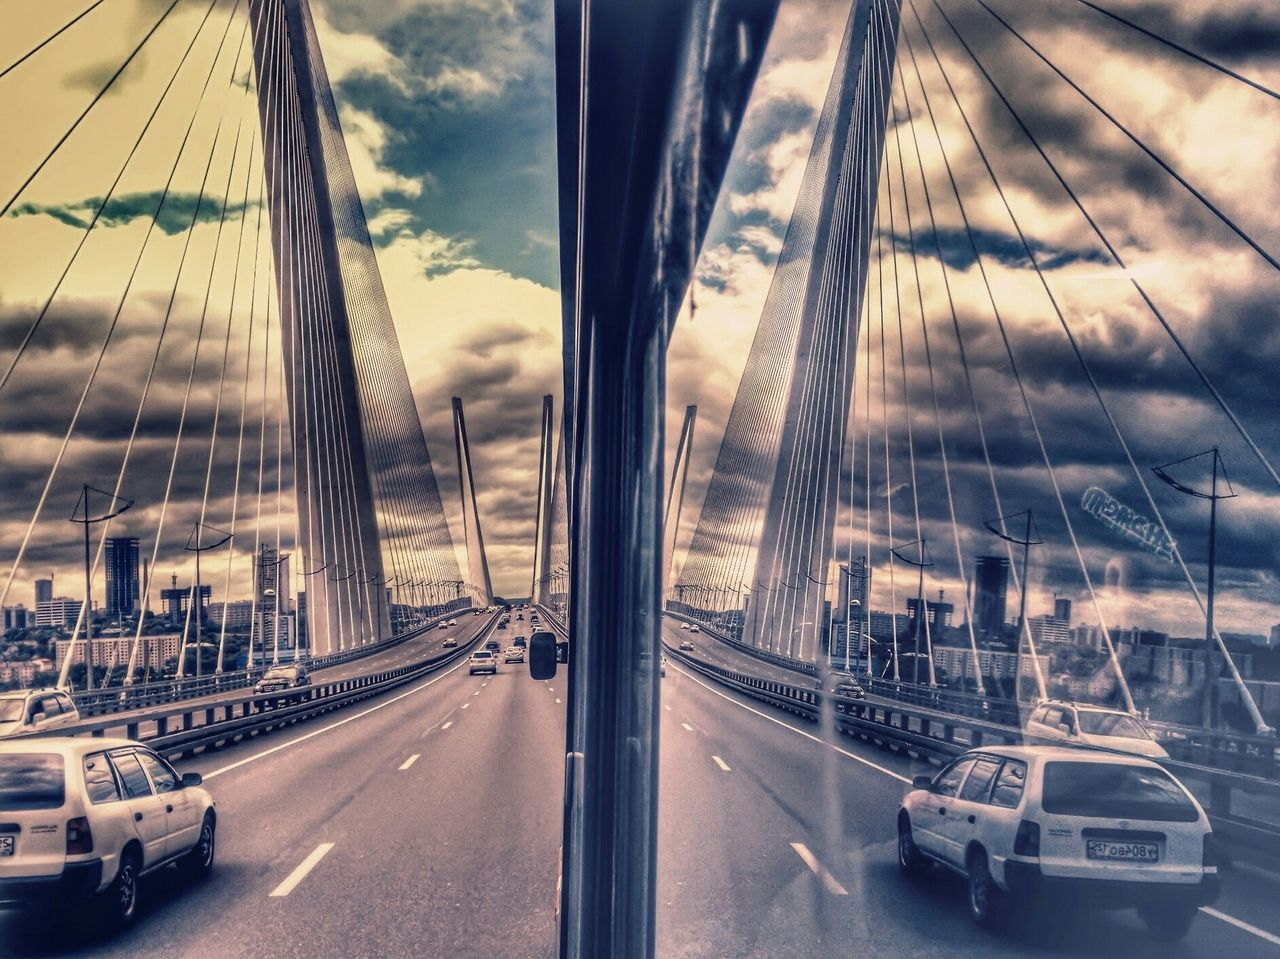 transportation, car, mode of transport, land vehicle, road, traffic, street, outdoors, suspension bridge, city, no people, sky, bridge - man made structure, day, architecture, nautical vessel